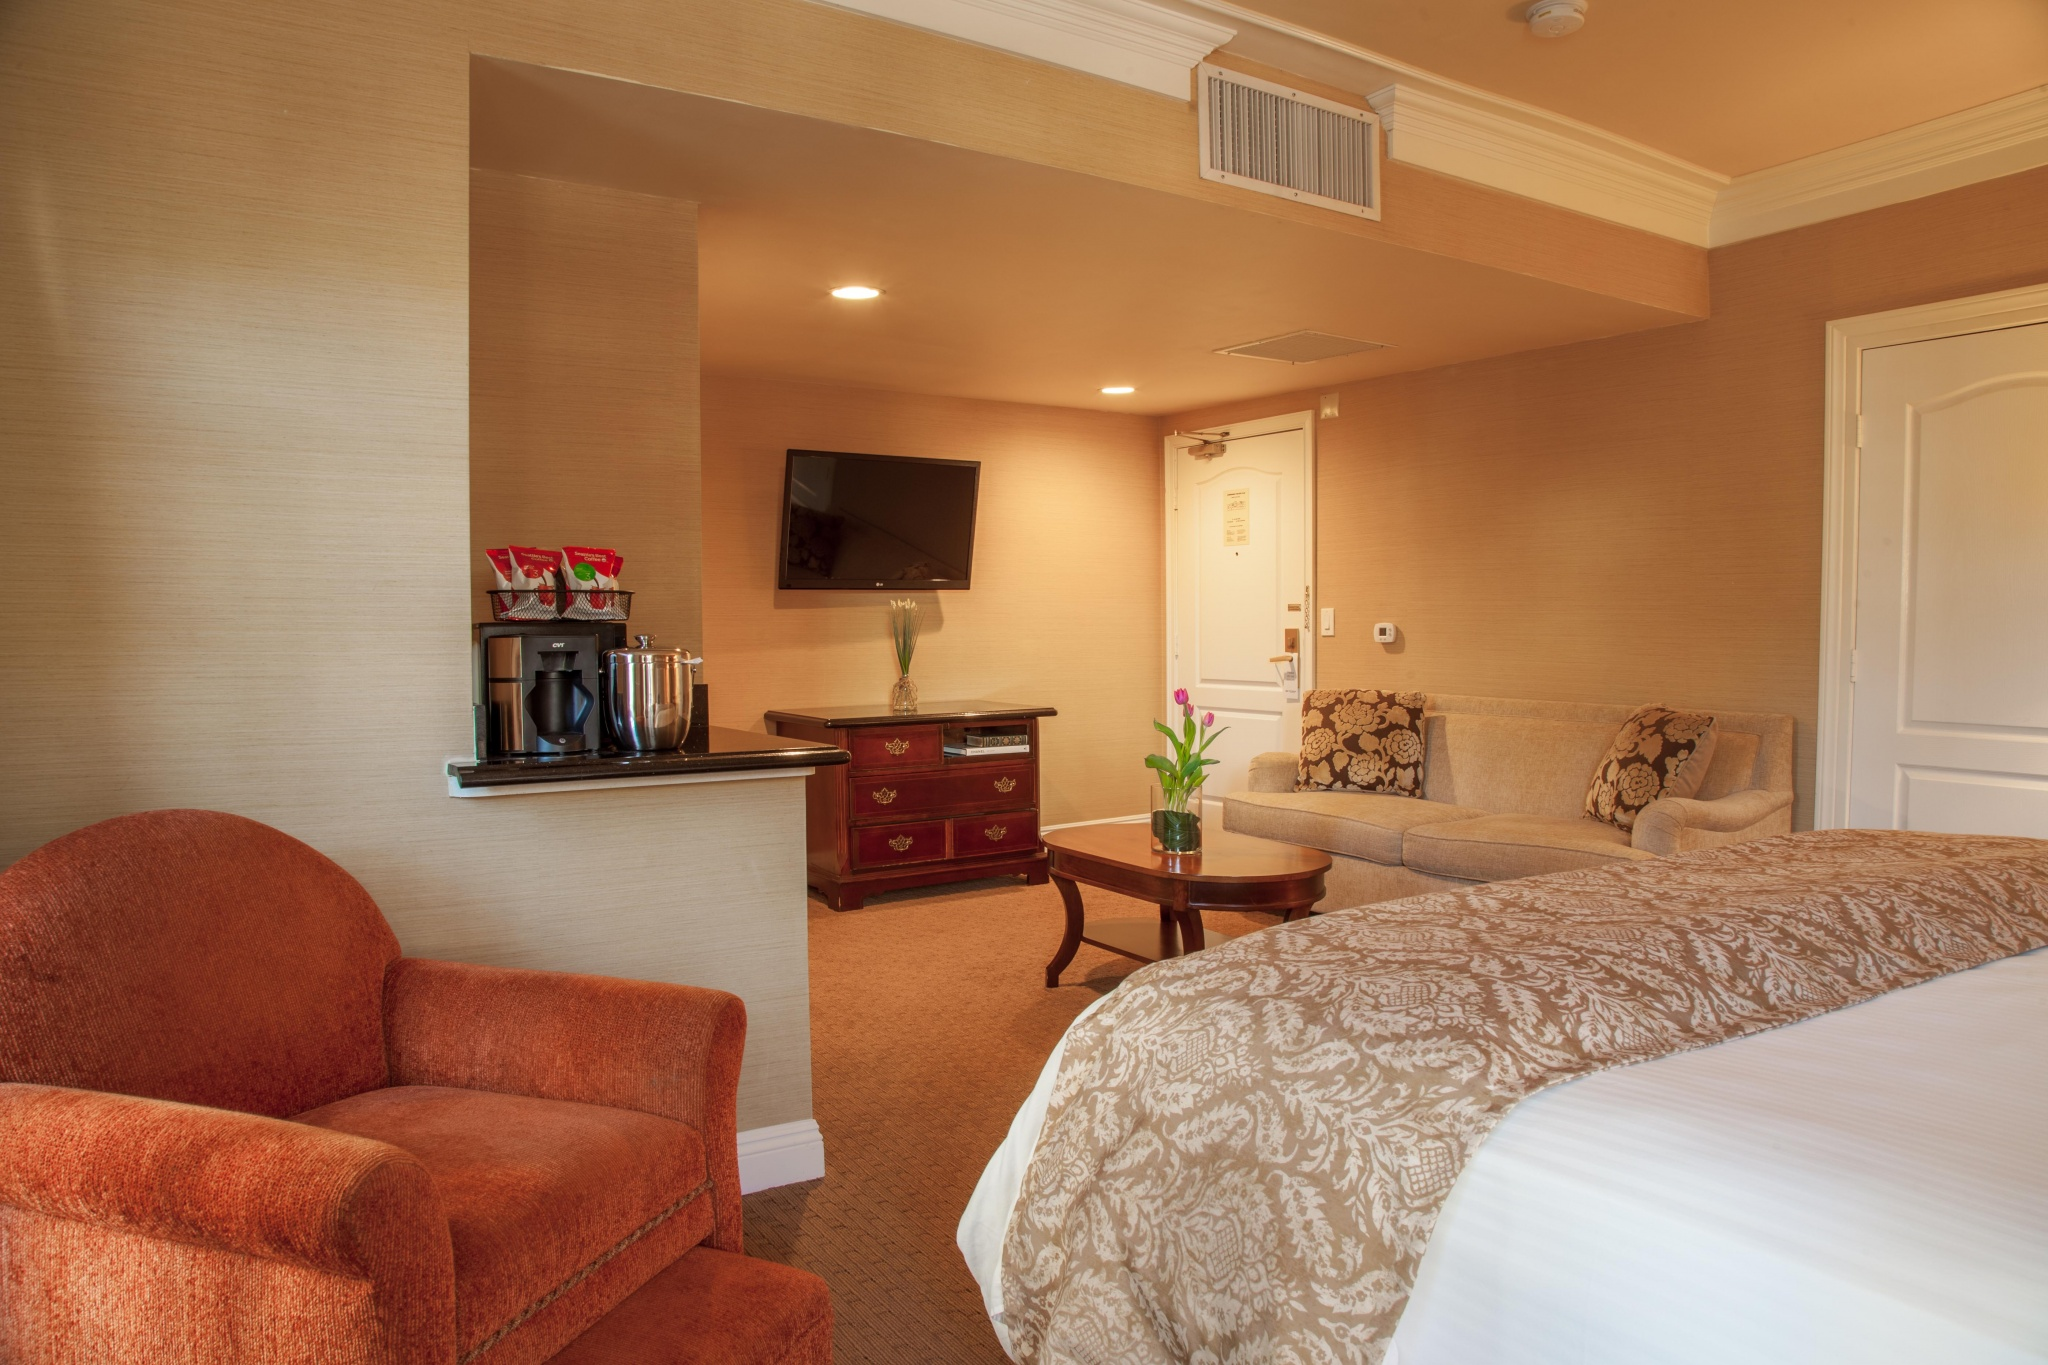 Best Western Plus Sunset Plaza Hotel | West Hollywood, CA | Gallery 31